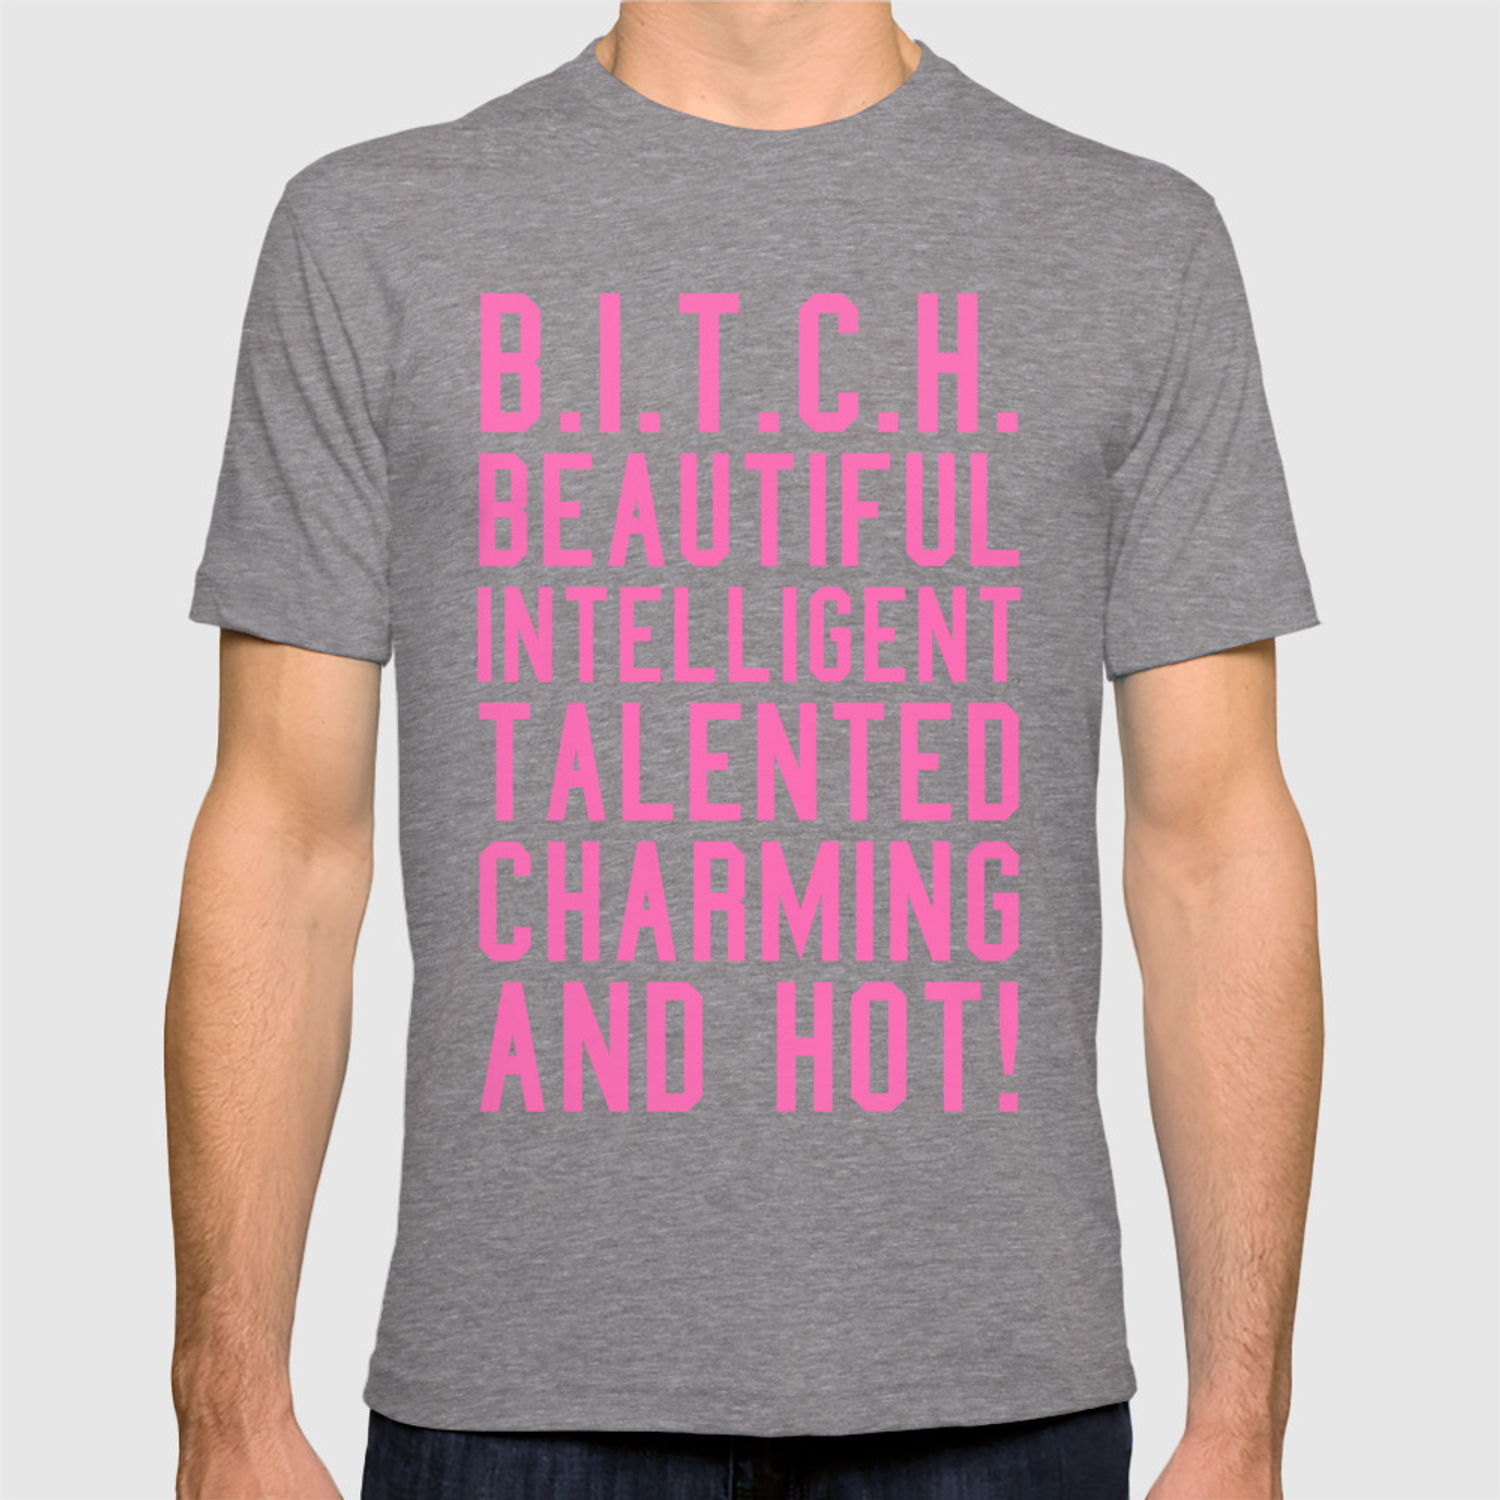 7206eea6 BITCH Acronym or Abbreviation (Hot Pink) T-shirt by creativeangel | Society6